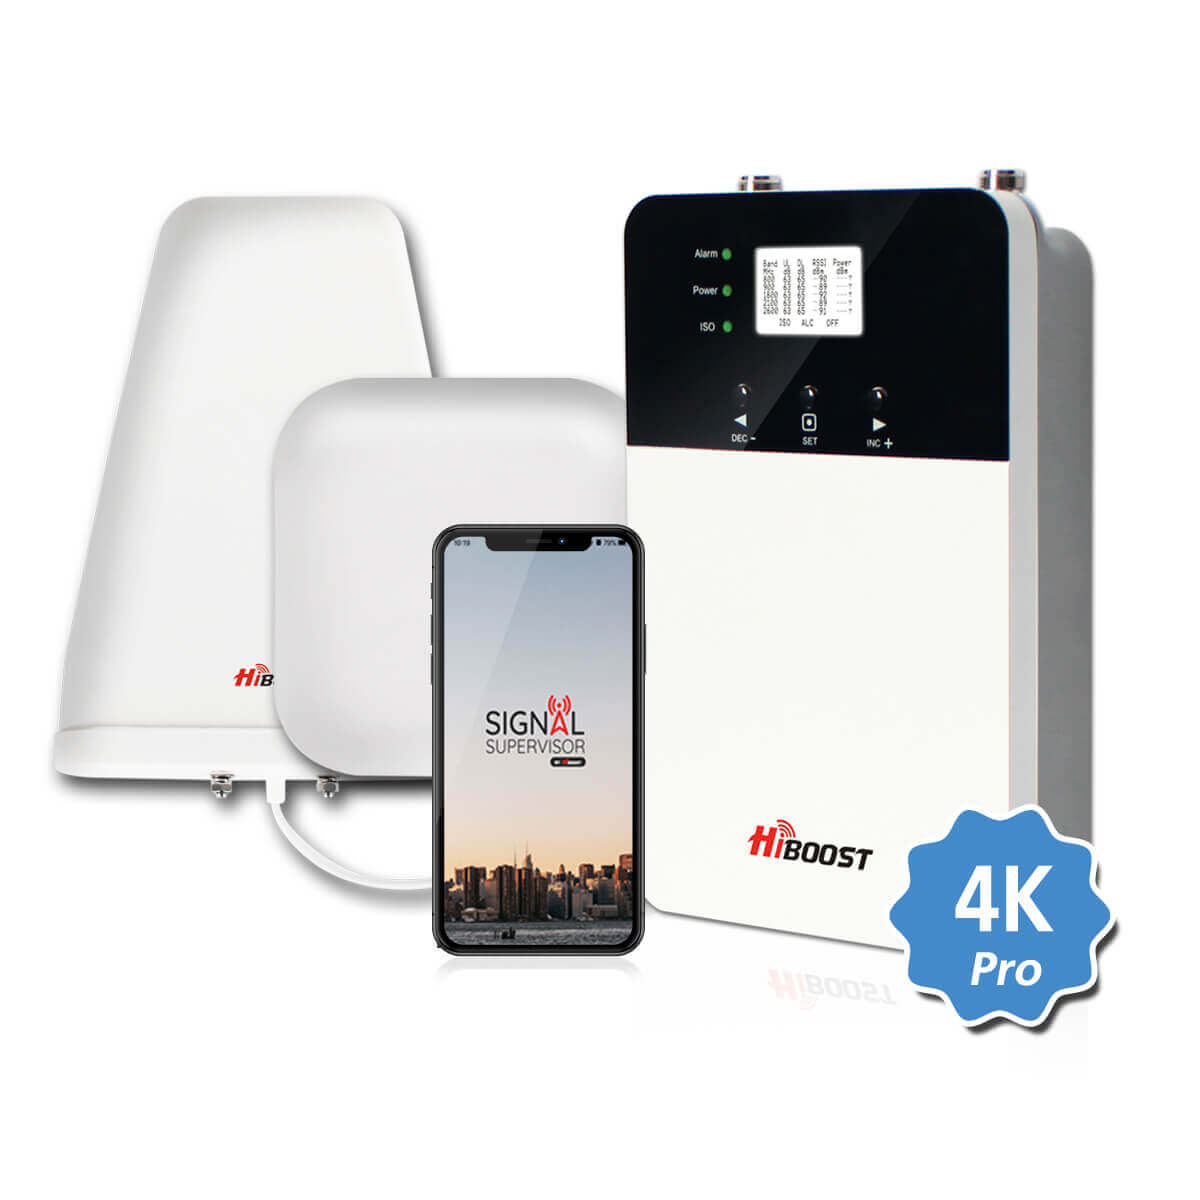 Hiboost-4K-Plus-Pro-Cell-Phone-Signal-Booster